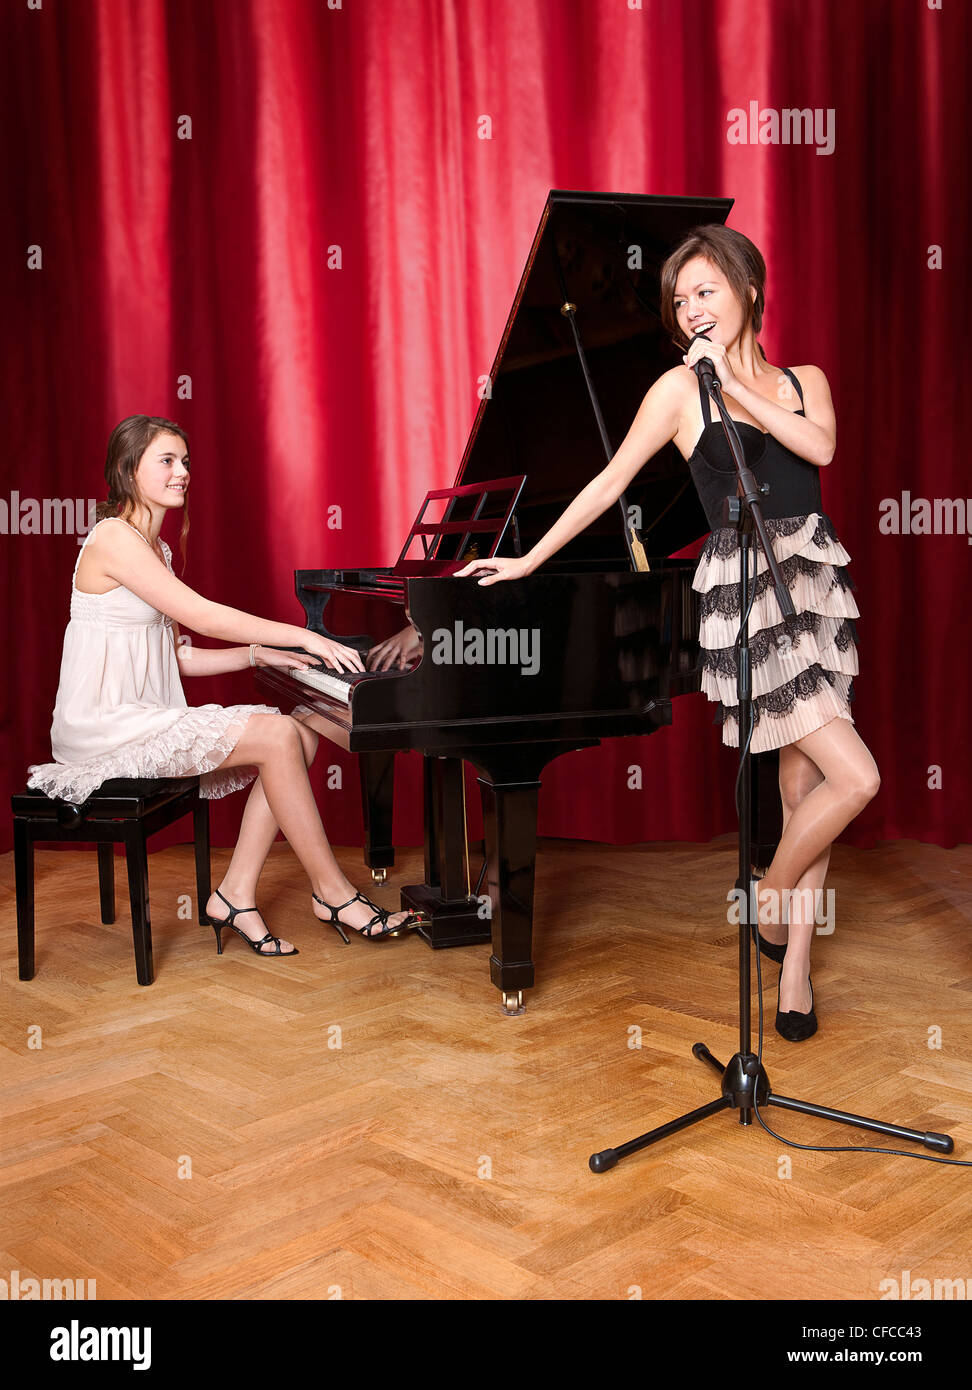 Duet with a young pianist behind a grand piano, looking at a beautiful lead singer - Stock Image